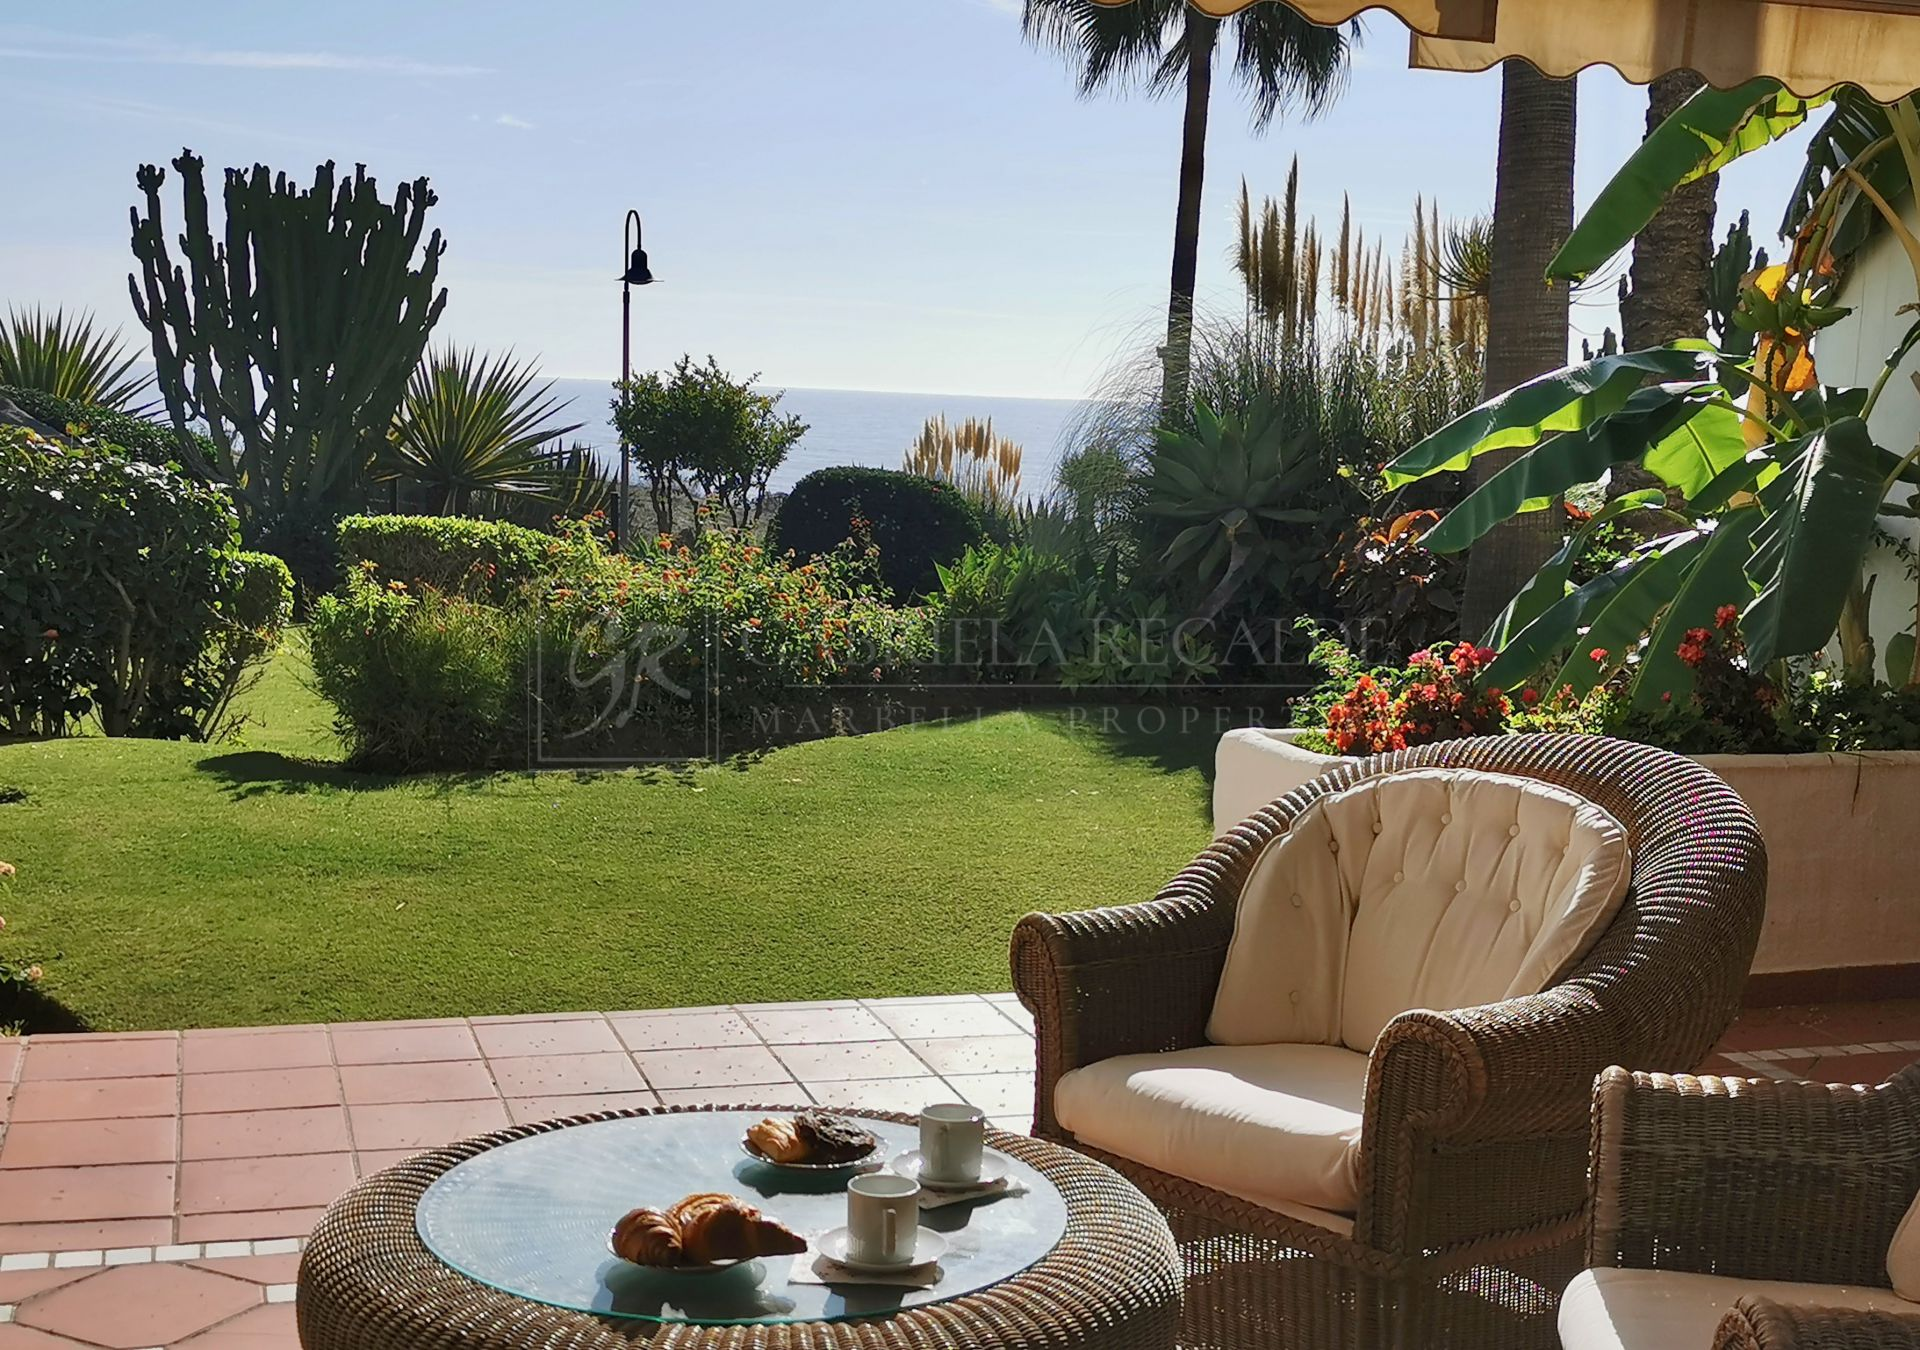 Beach front apartment with sea views and garden